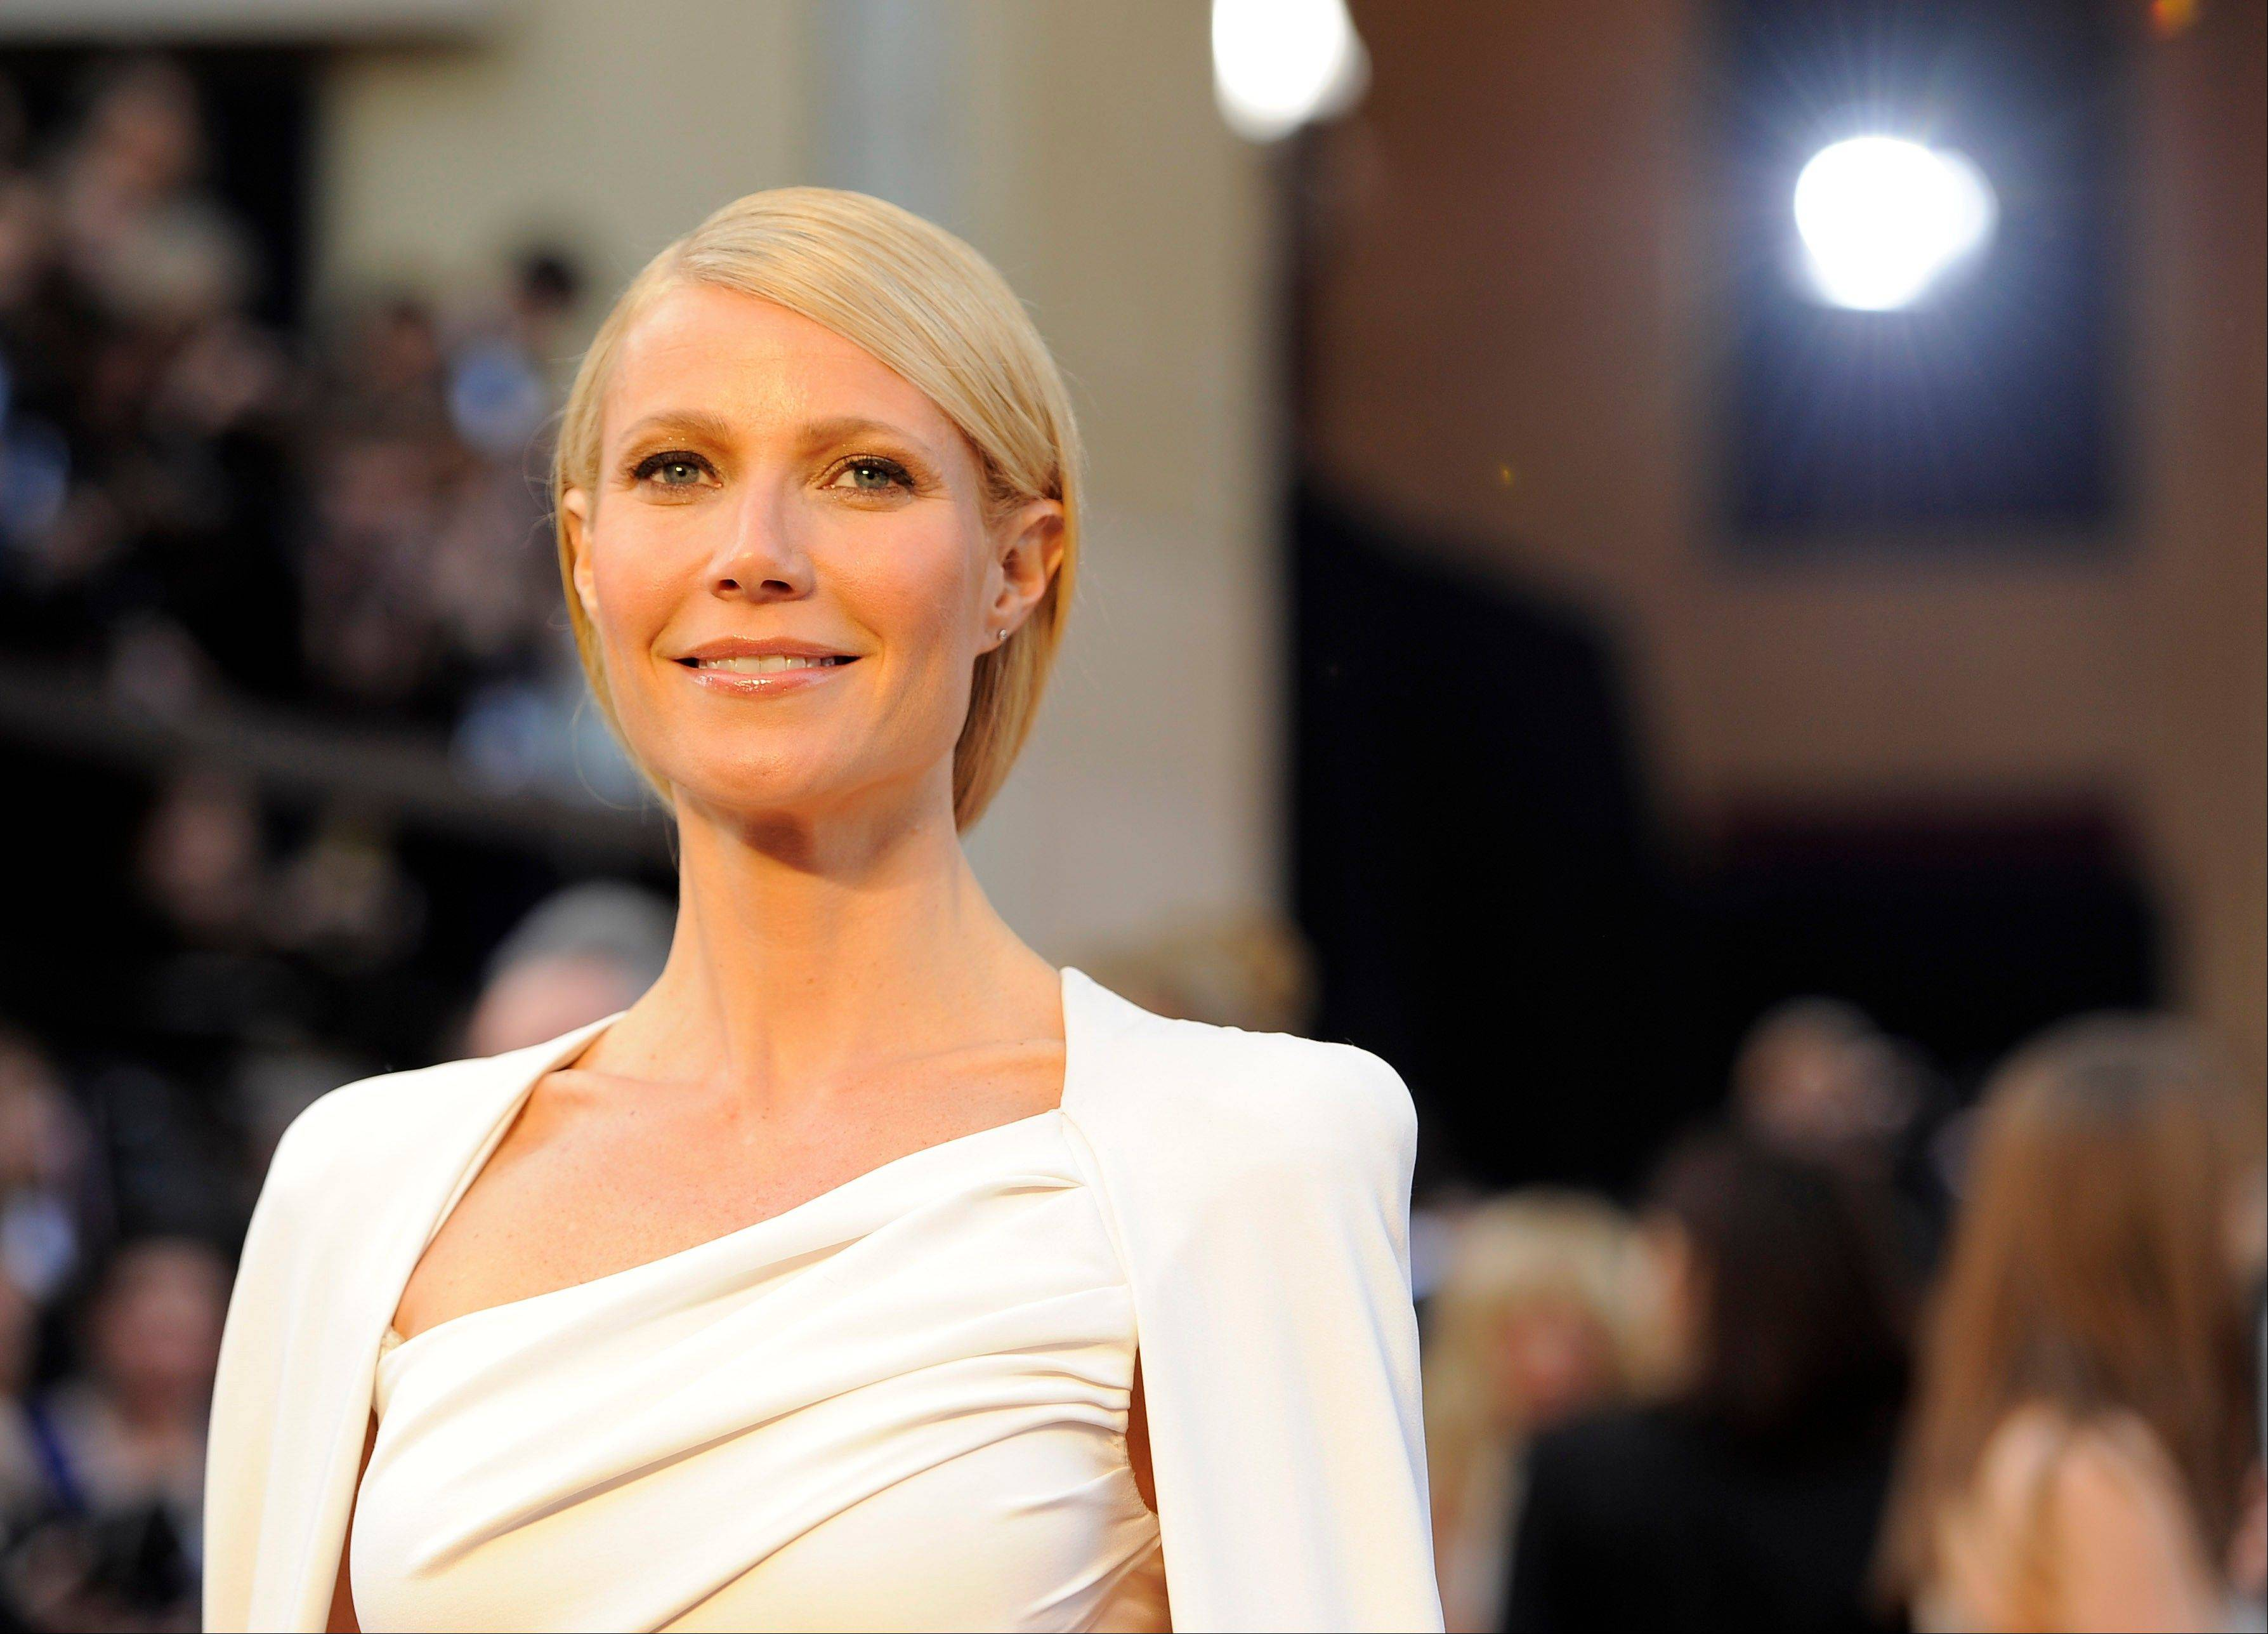 Actress Gwyneth Paltrow will serve as the executive producer for the live, Stand Up to Cancer telethon on Sept. 7, 2012, to raise money and awareness to fight the disease.